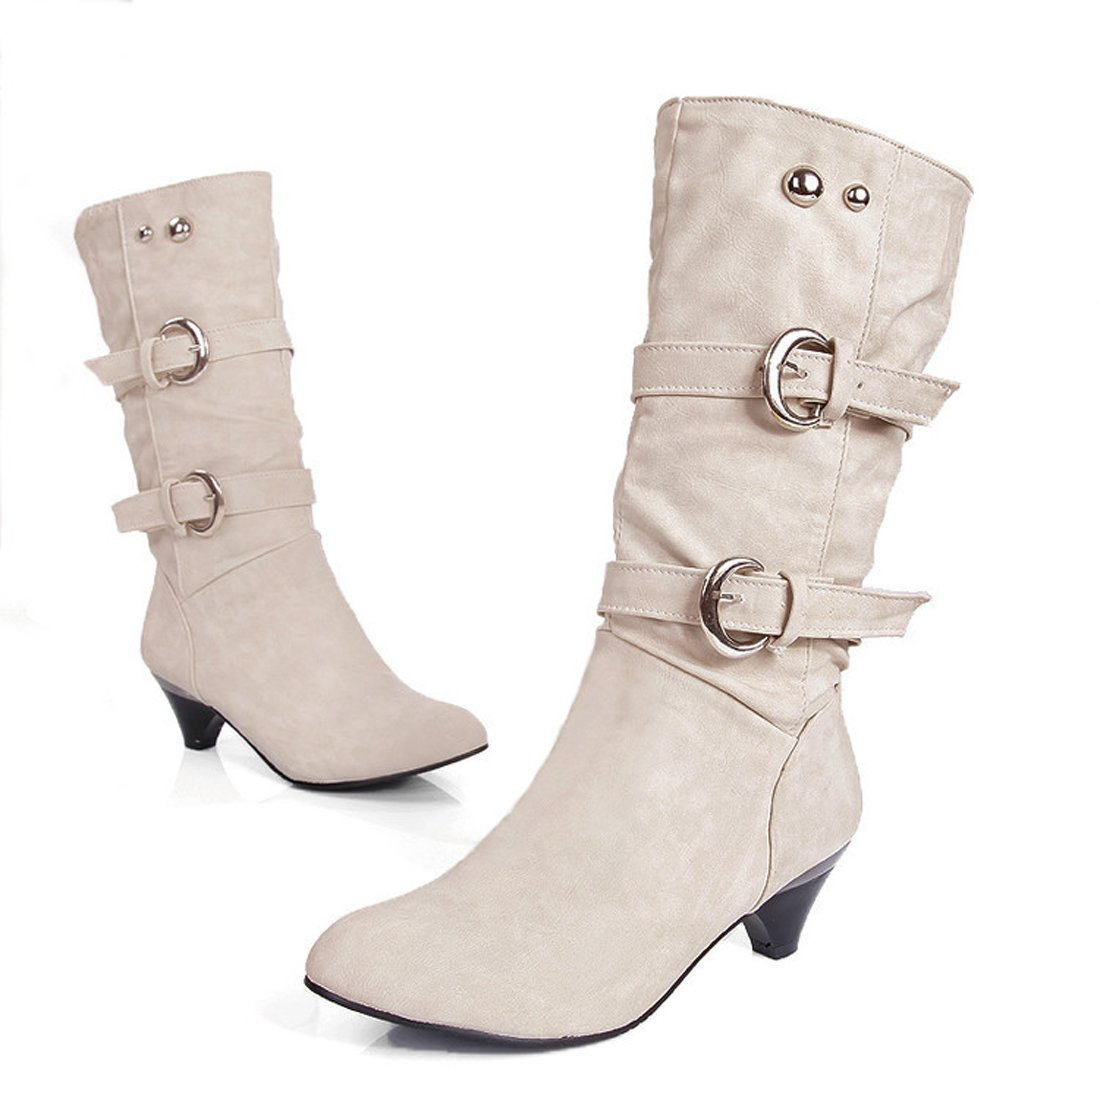 Susanny Women's Buckle Straps Low Heel Casual Trendy Autumn Round Toe Mid Calf Knee High Boots